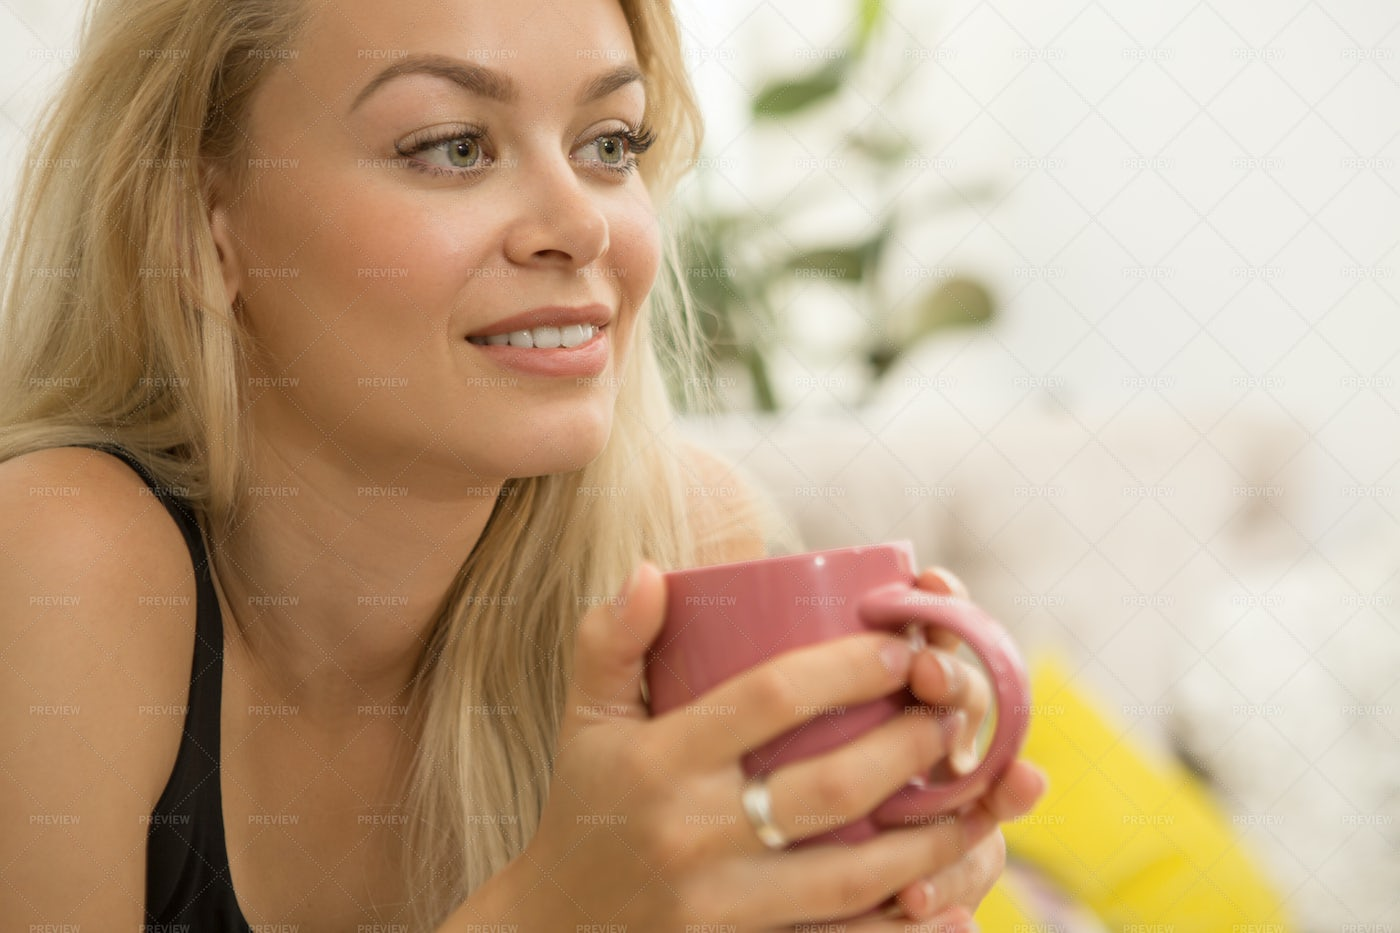 Woman And A Hot Drink: Stock Photos